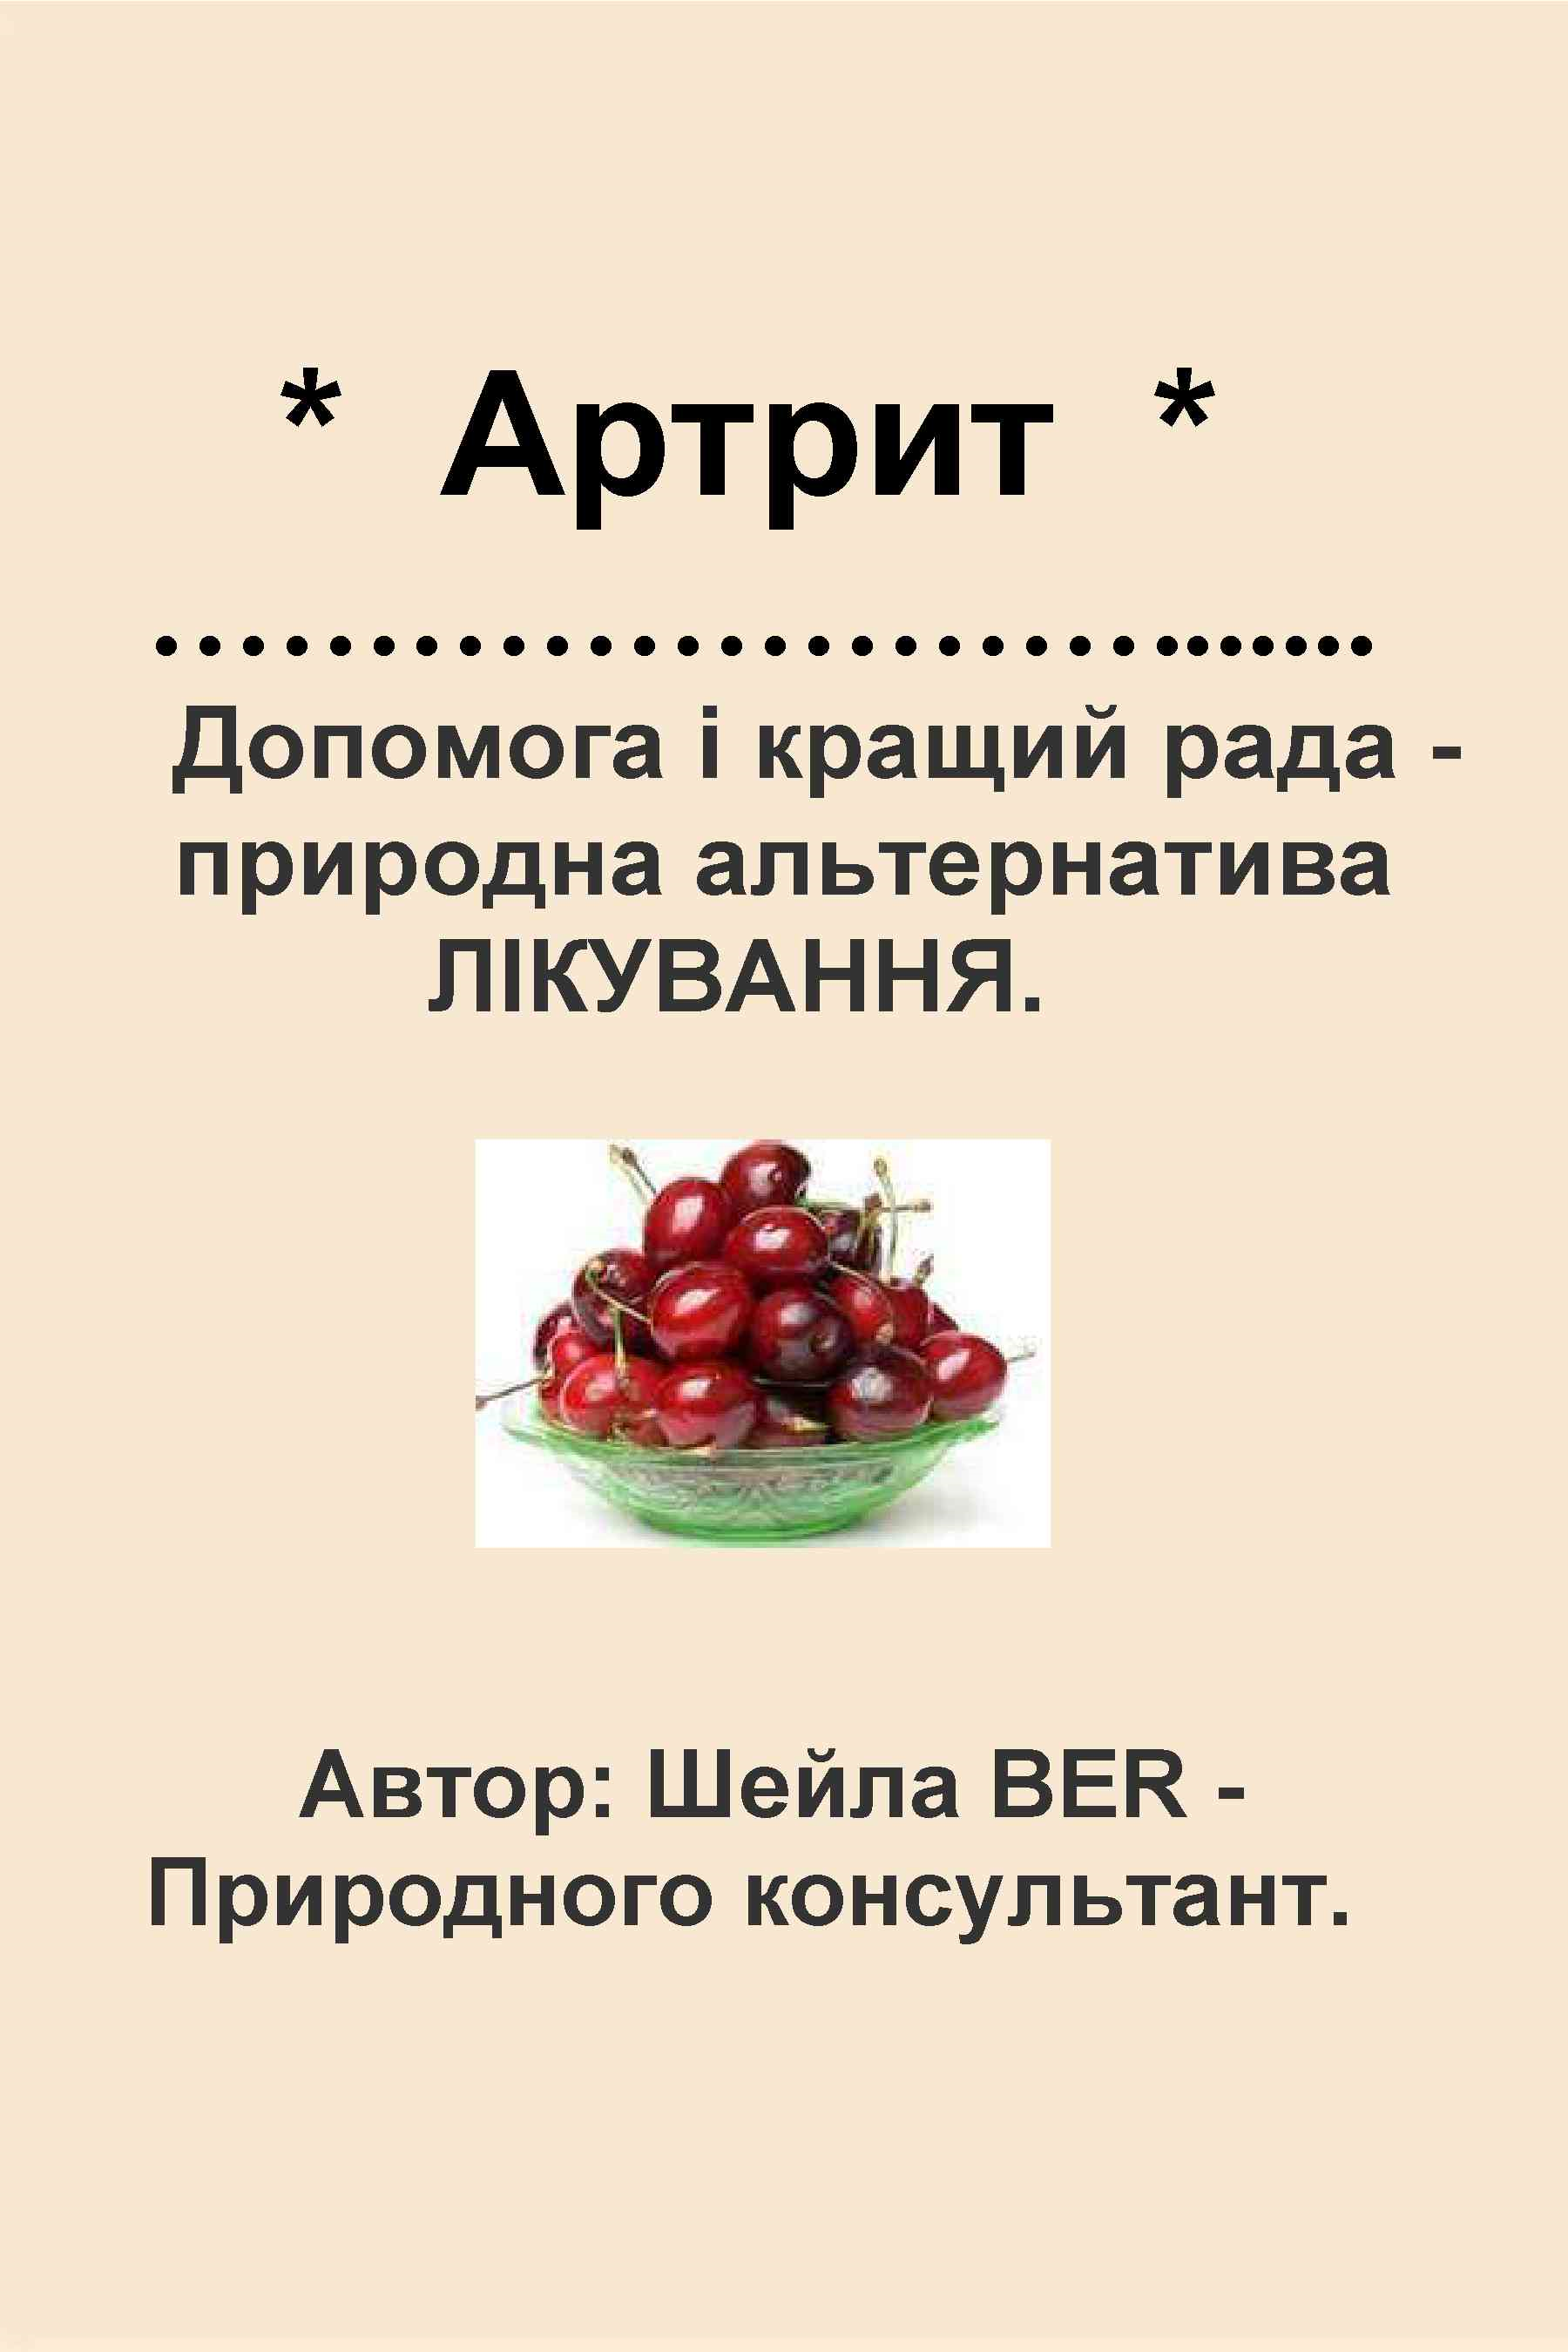 * ARTHRITIS * HELP and BEST ADVICE - NATURAL ALTERNATIVE. UKRAINIAN Edition. Written by SHEILA BER.